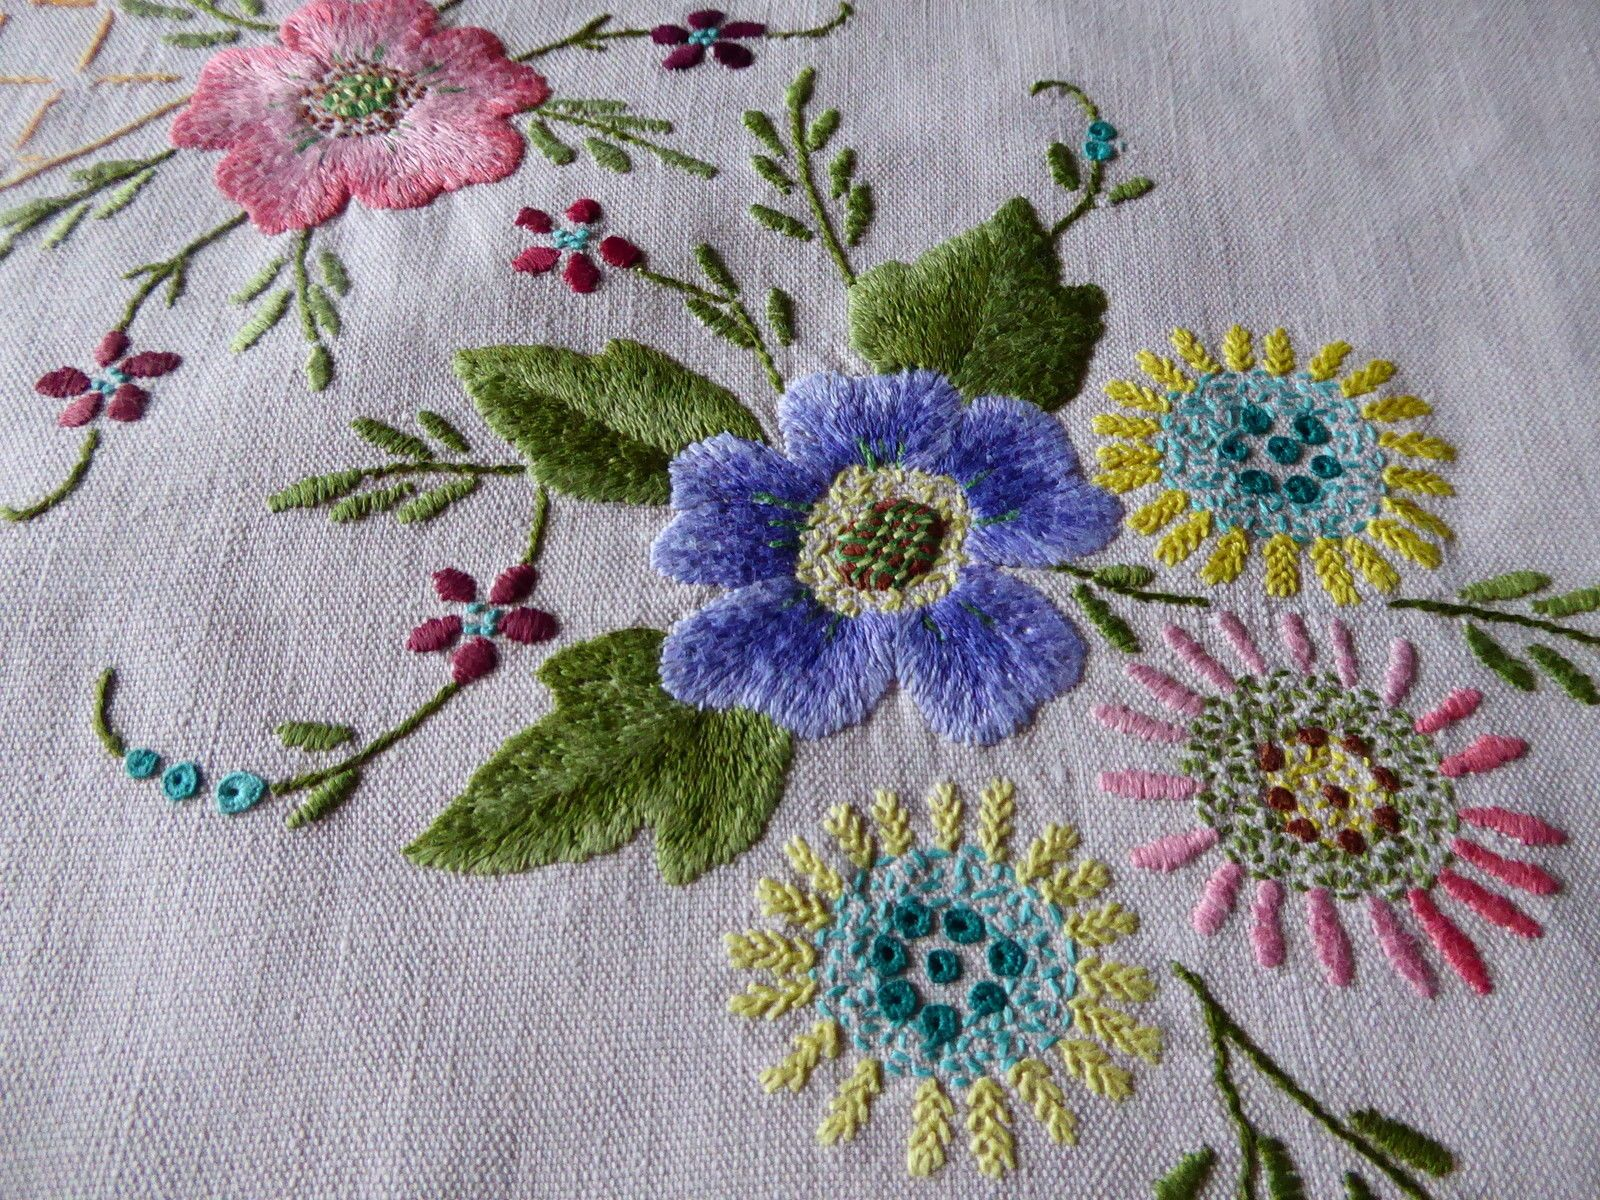 Outline embroidery designs for tablecloth - Vintage Hand Embroidered Linen Tablecloth Beautiful Raised Floral Embroidery